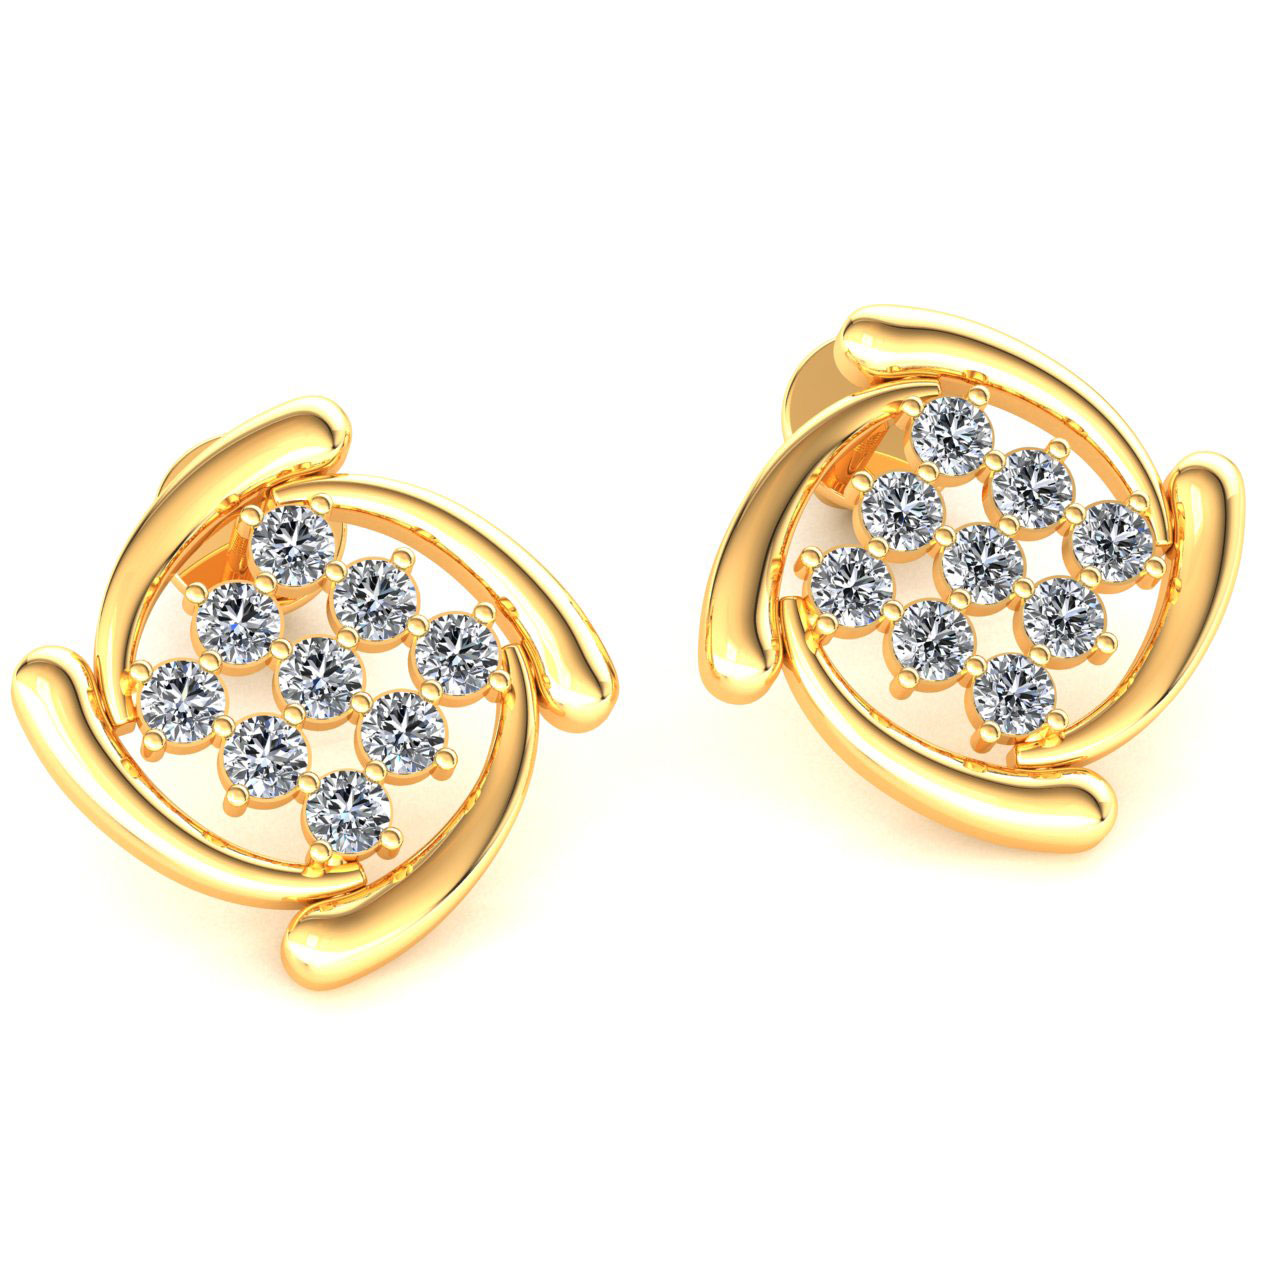 Details About Genuine 0 6ct Round Cut Diamond Las Daily Wear Earrings Solid 18k Gold